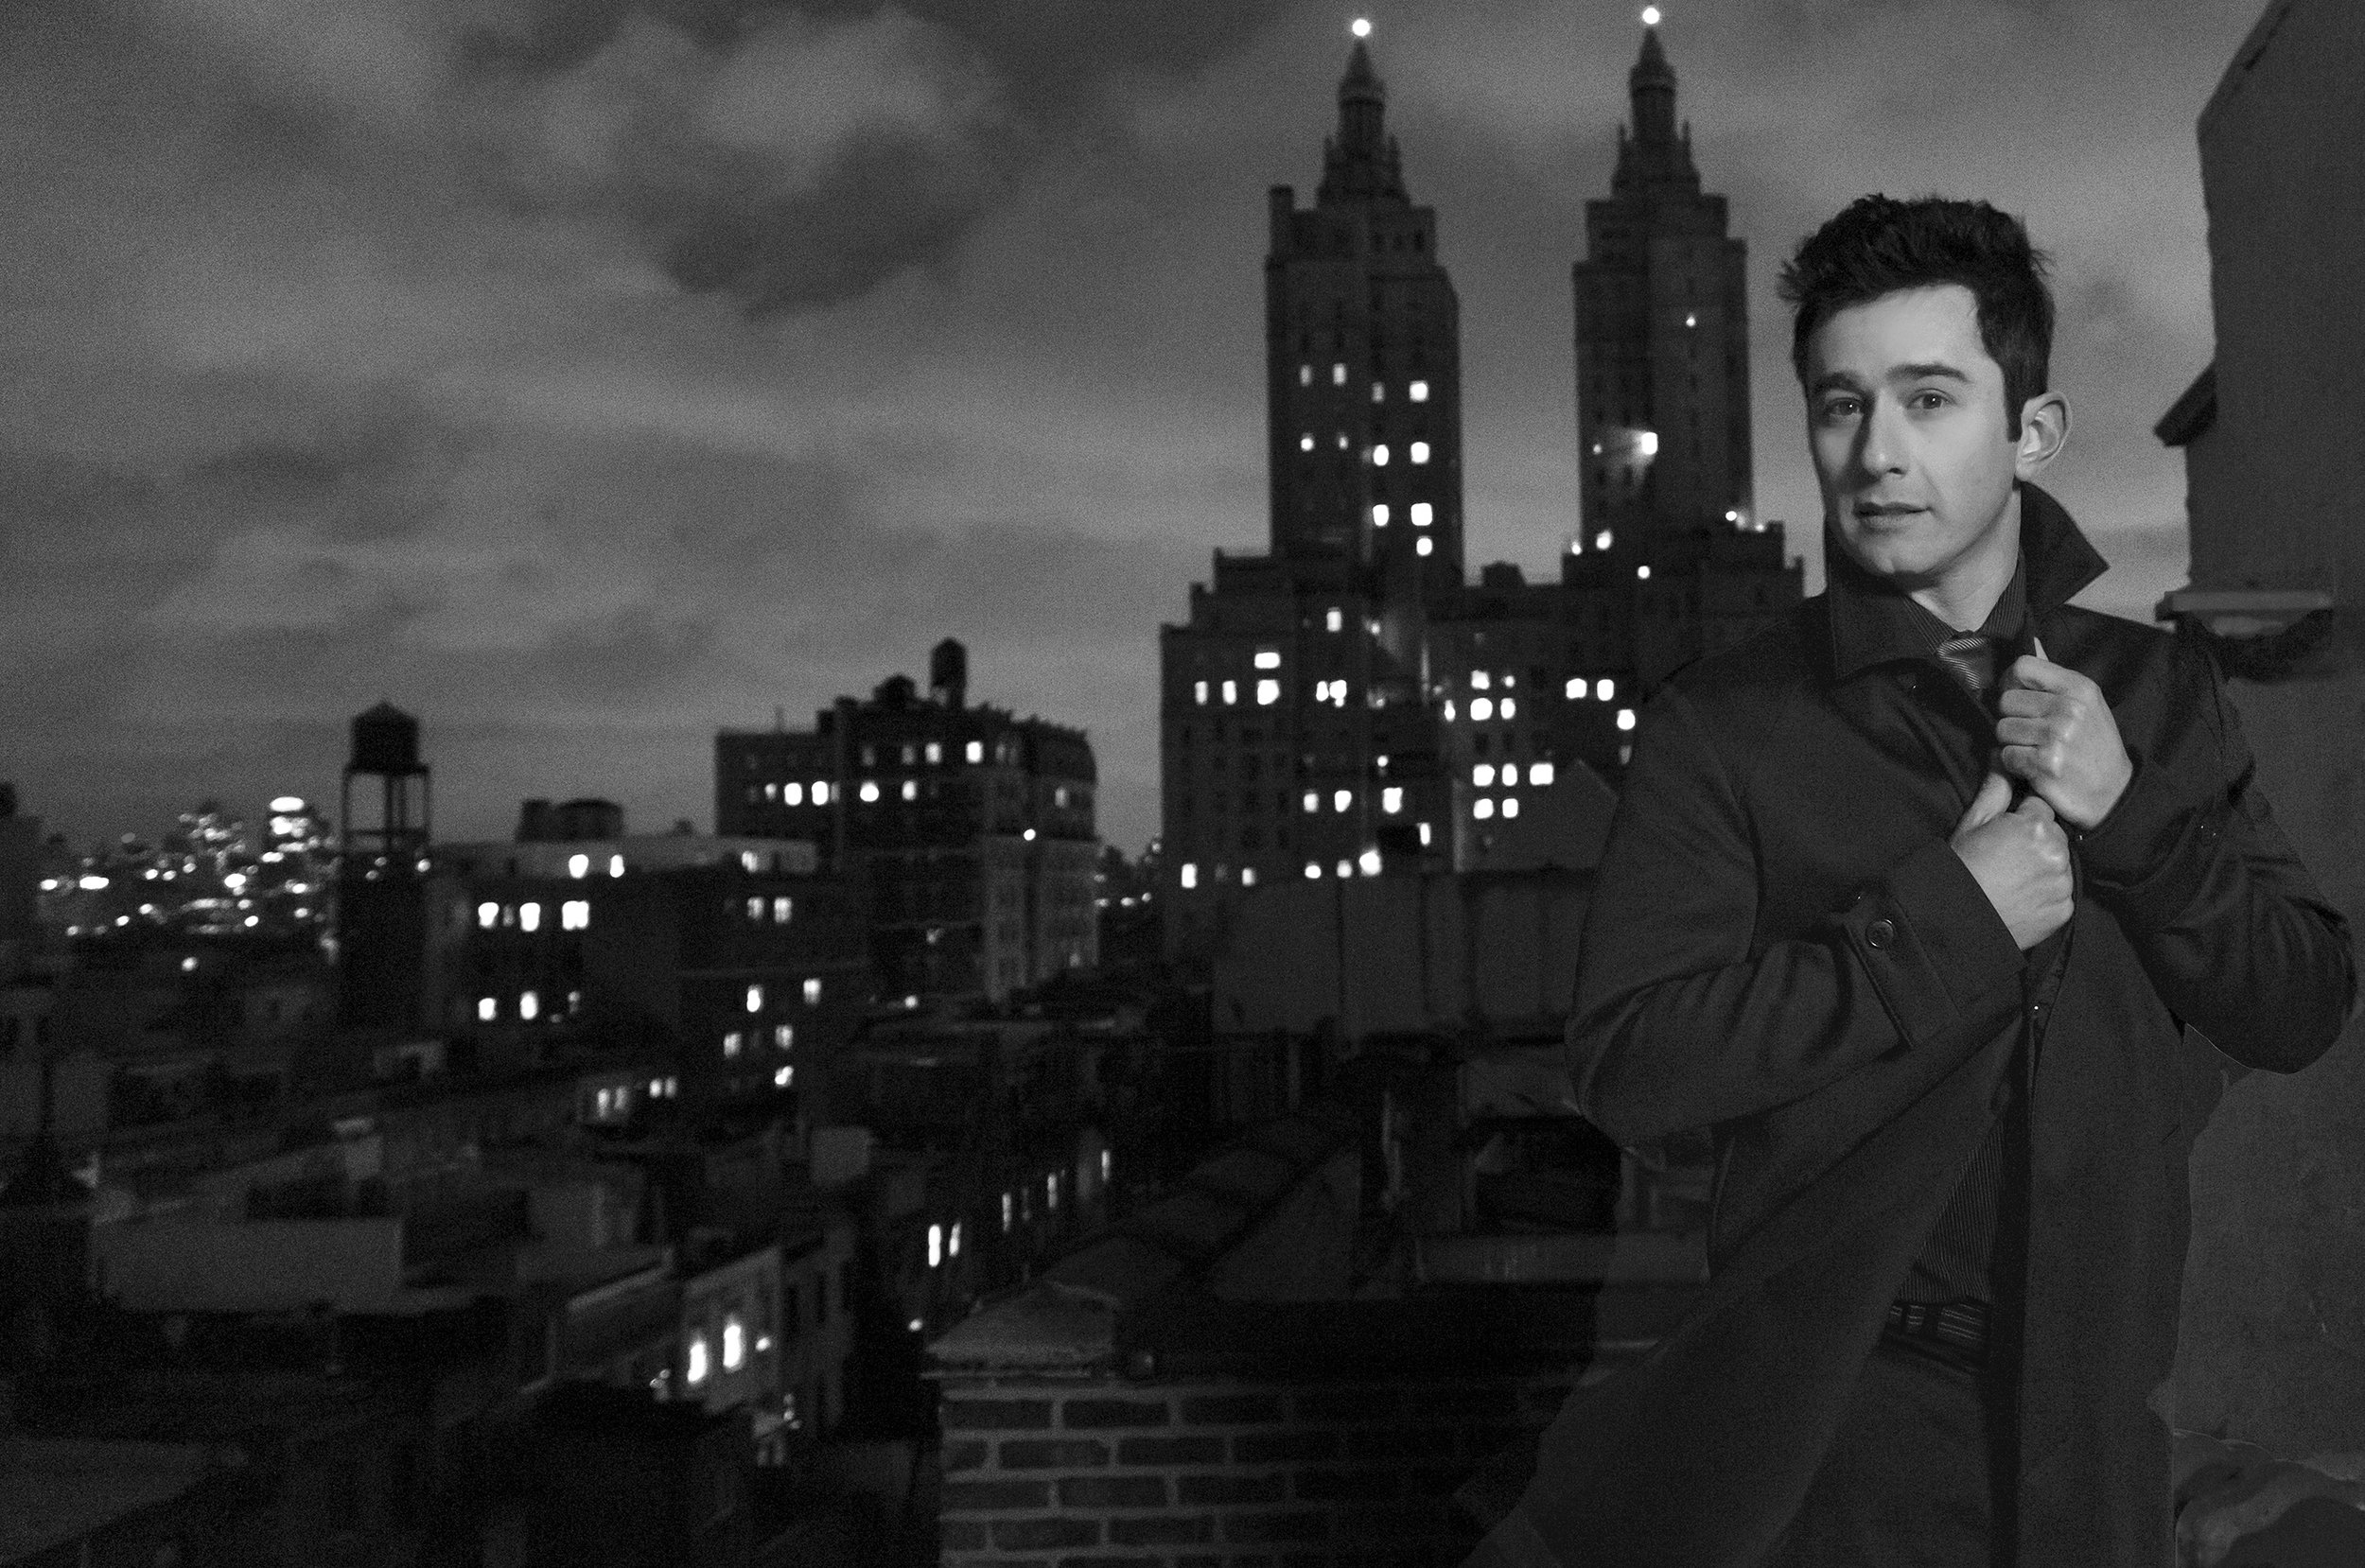 MattBaker_Katz_Press shot Rooftop_D8C0823e BW.jpg